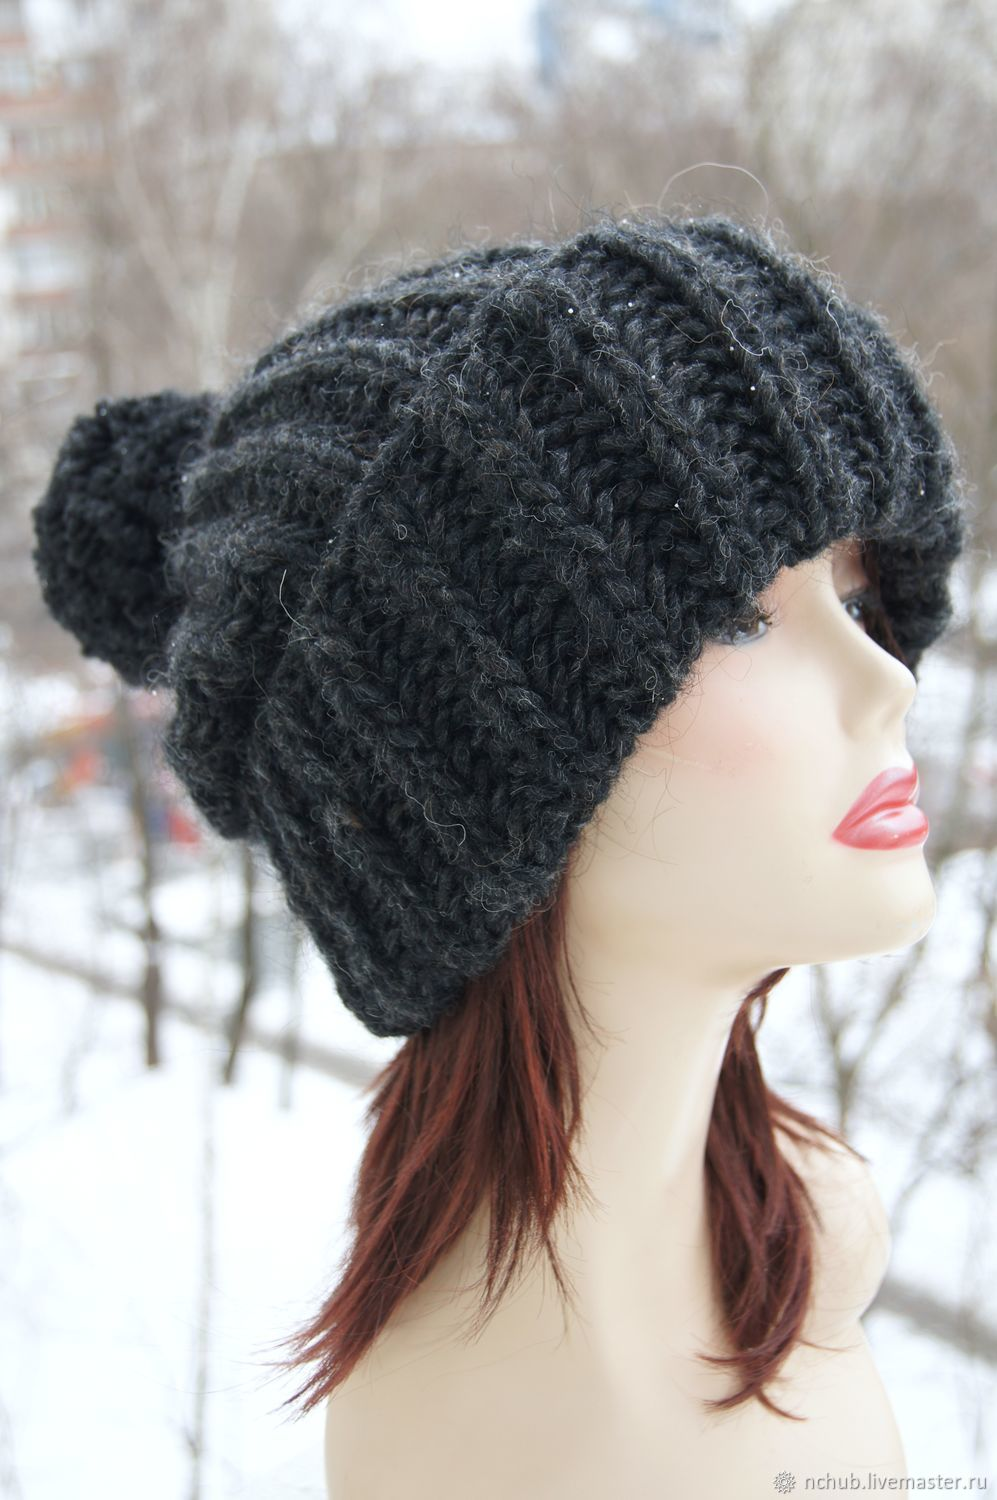 Black knitted Hat made of 100% Icelandic wool, Caps, Moscow,  Фото №1